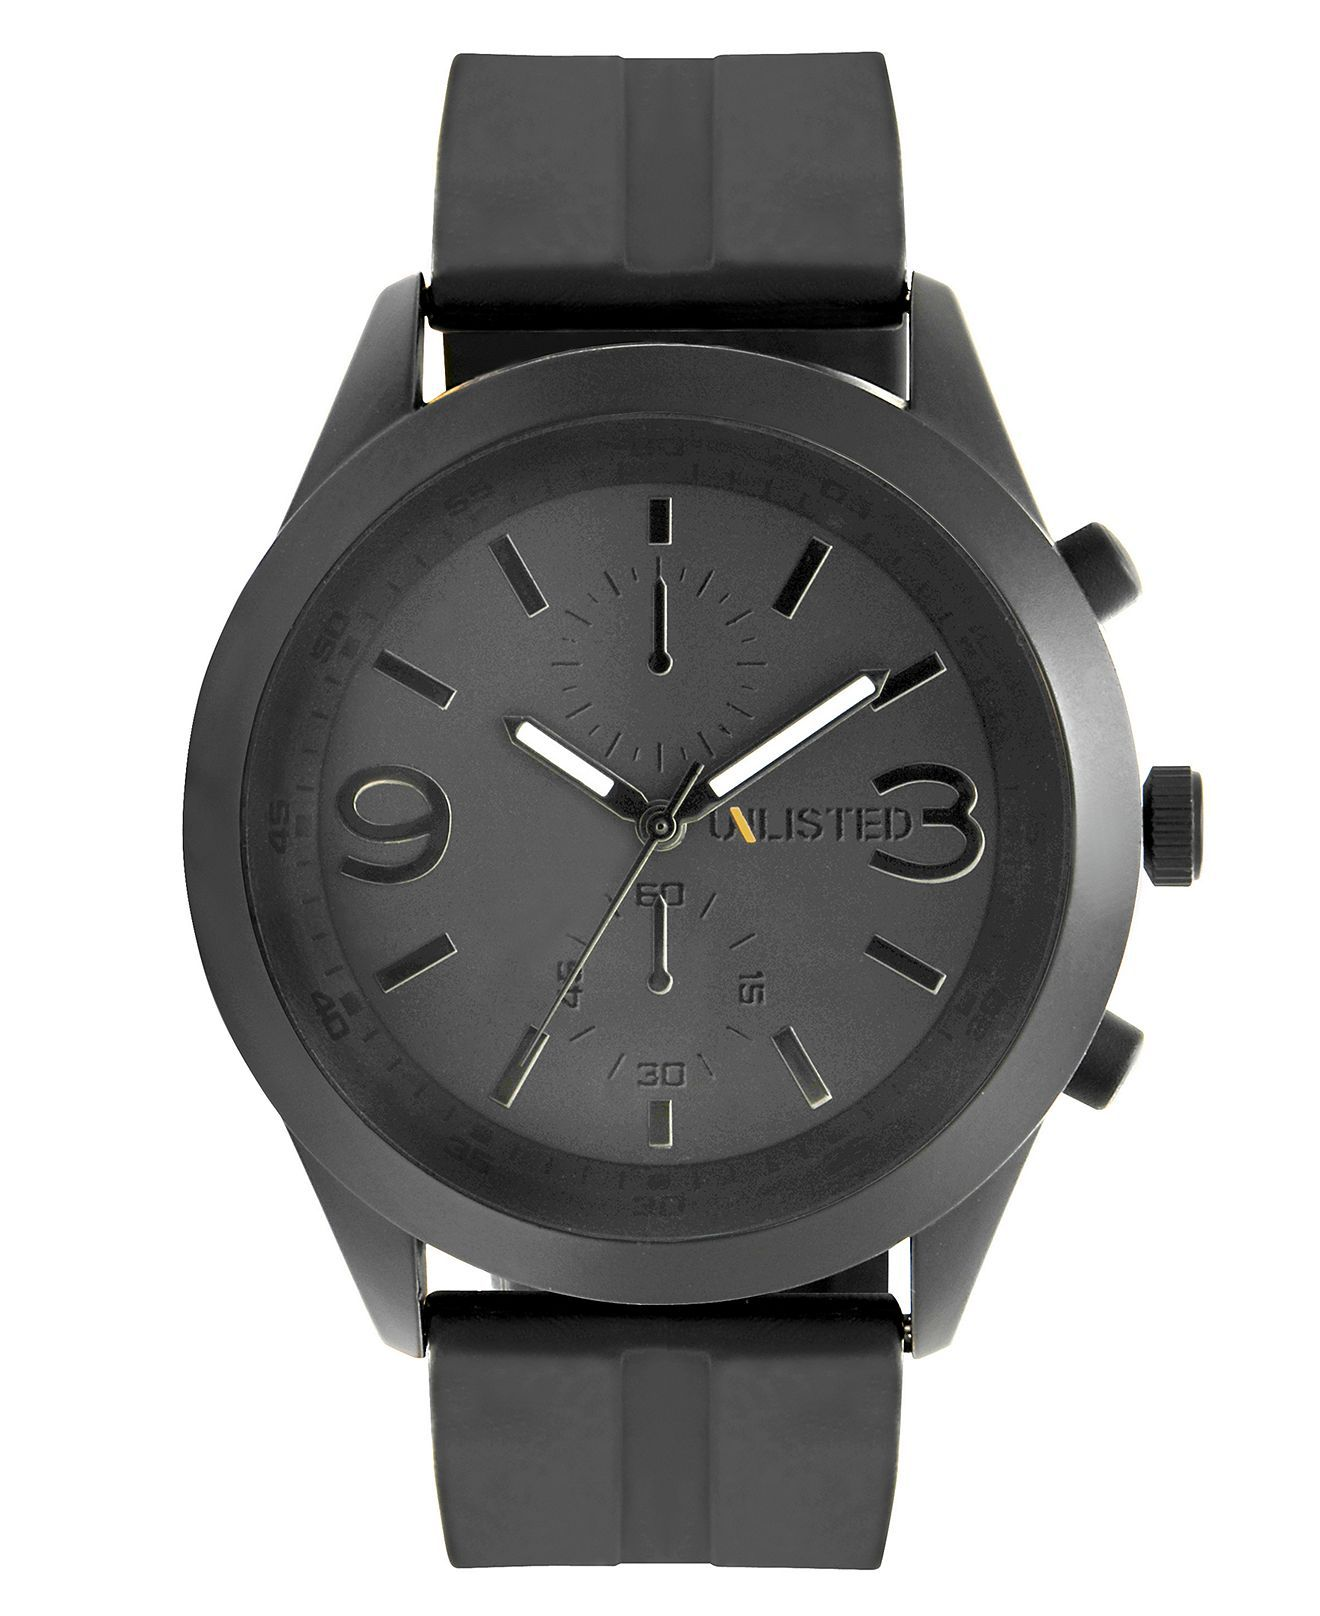 Unlisted Watch, Men's Chronograph Black Silicone Strap